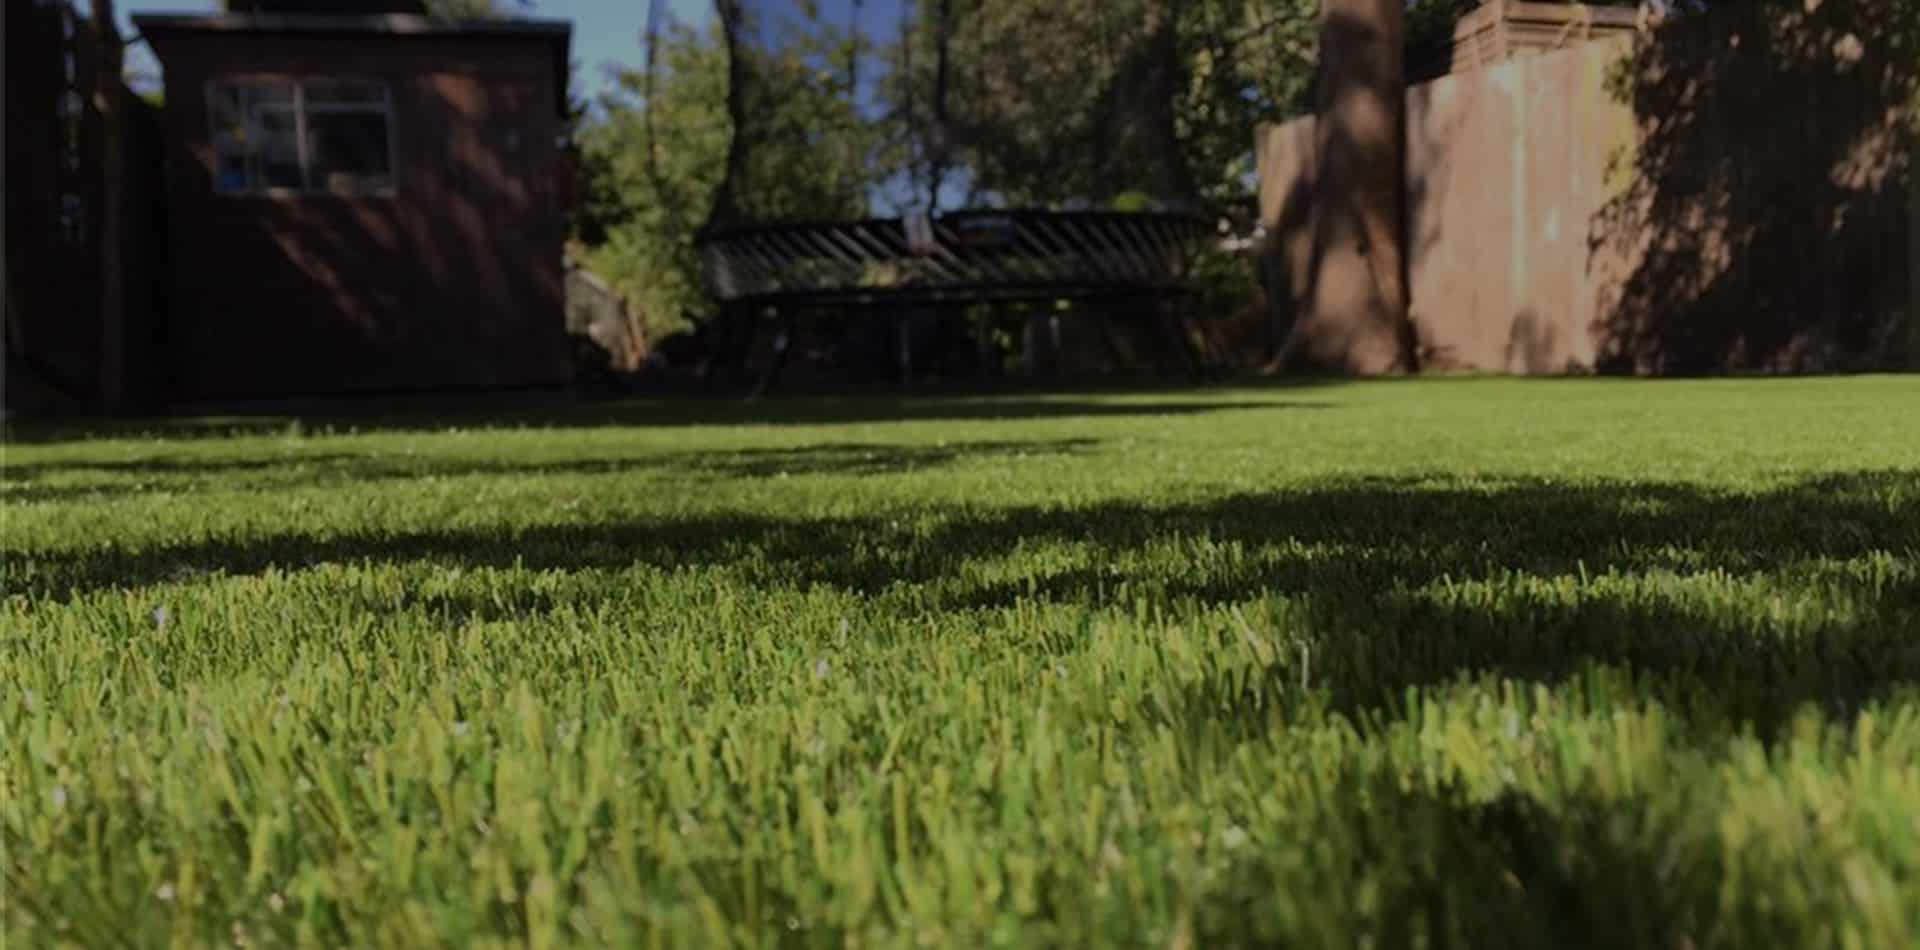 Why Laying Artificial Grass Can Help Your Allergies